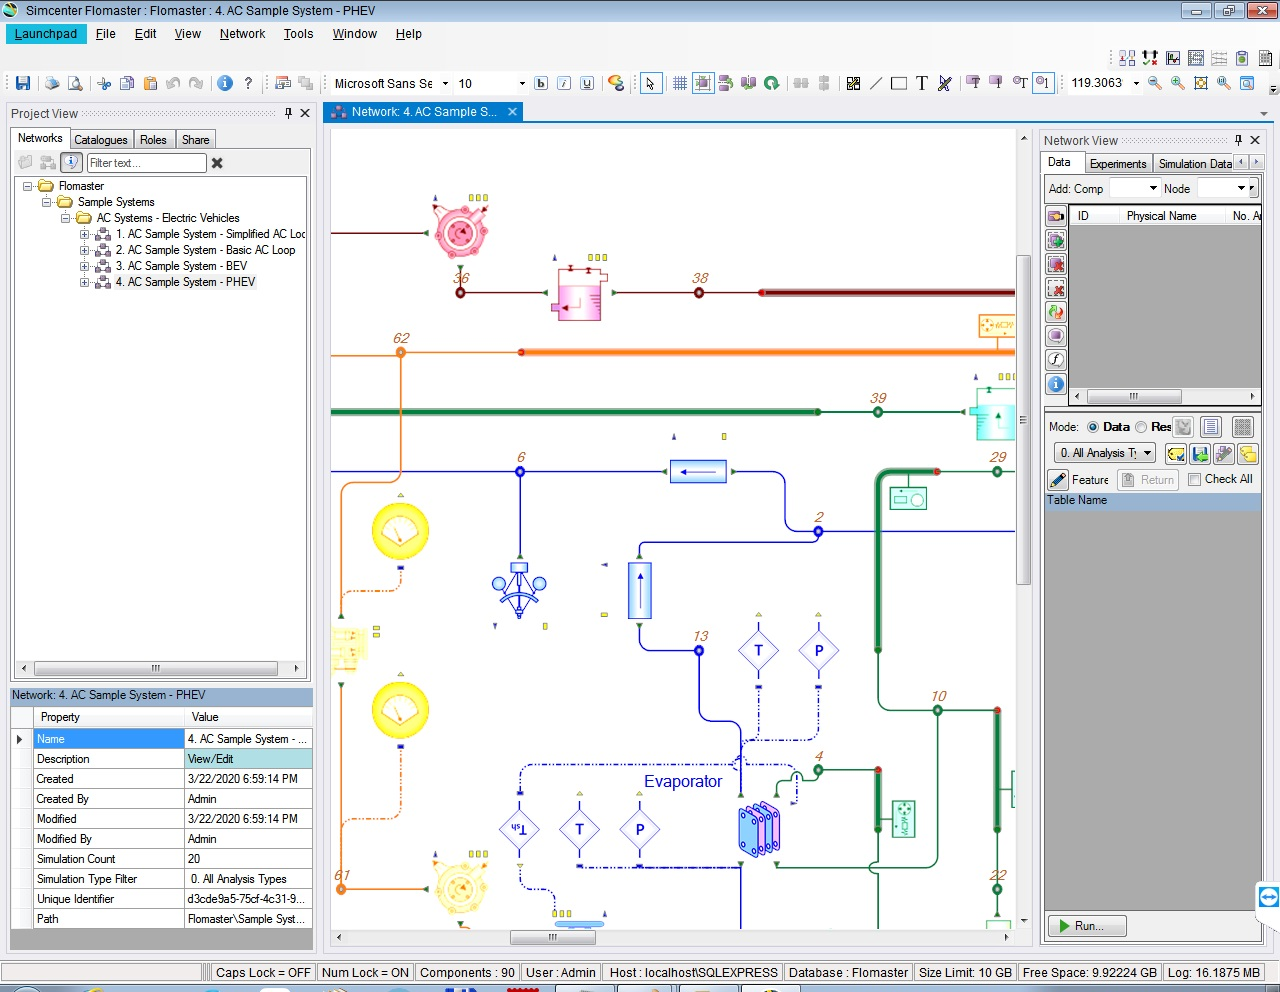 Working with Siemens Simcenter Flomaster 2019.3 full license